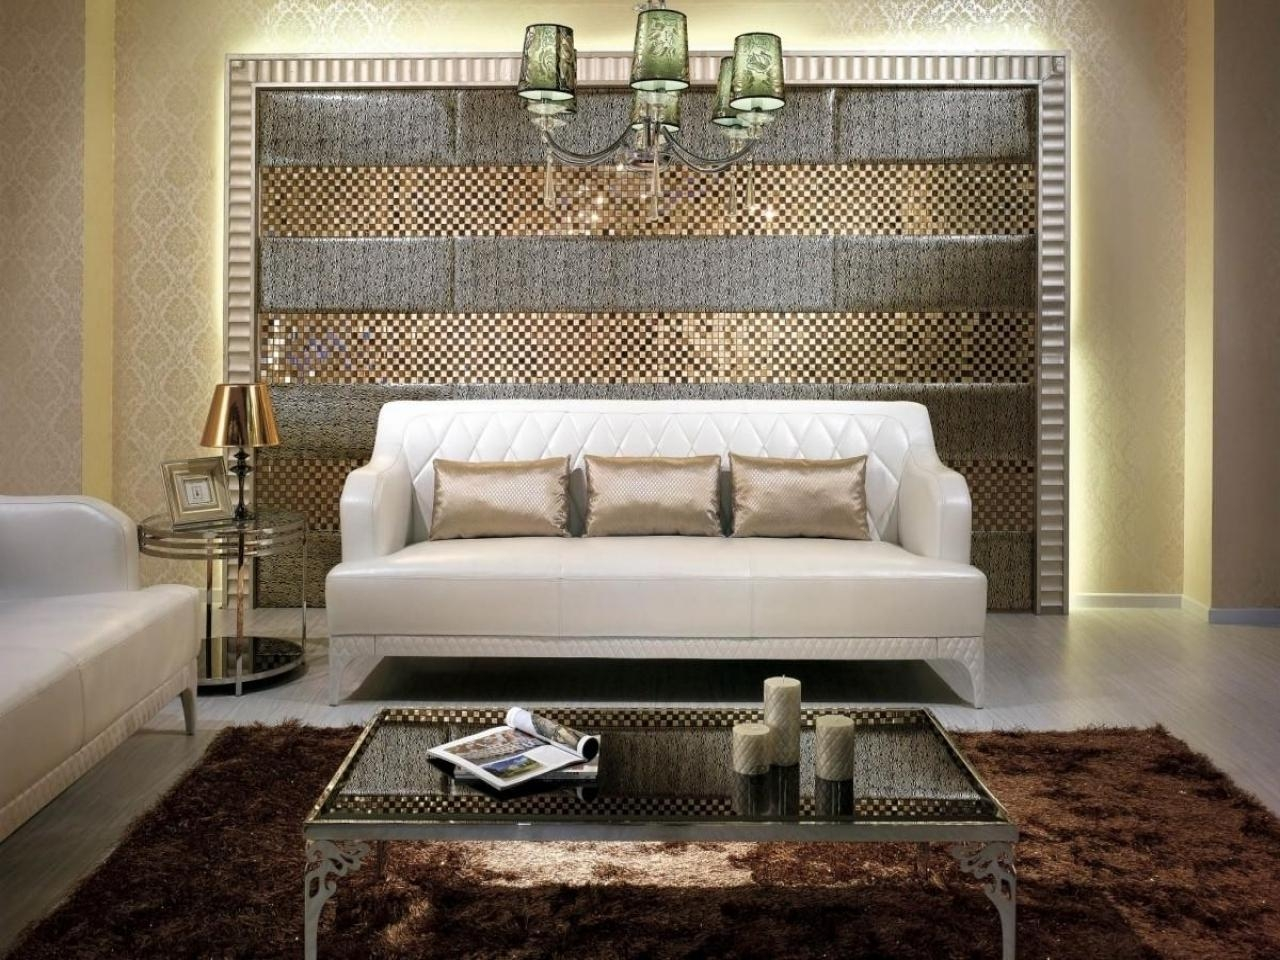 Glamour Wall Art Com With Glamorous ~ Arttogallery Within Glamorous Wall Art (Image 8 of 20)